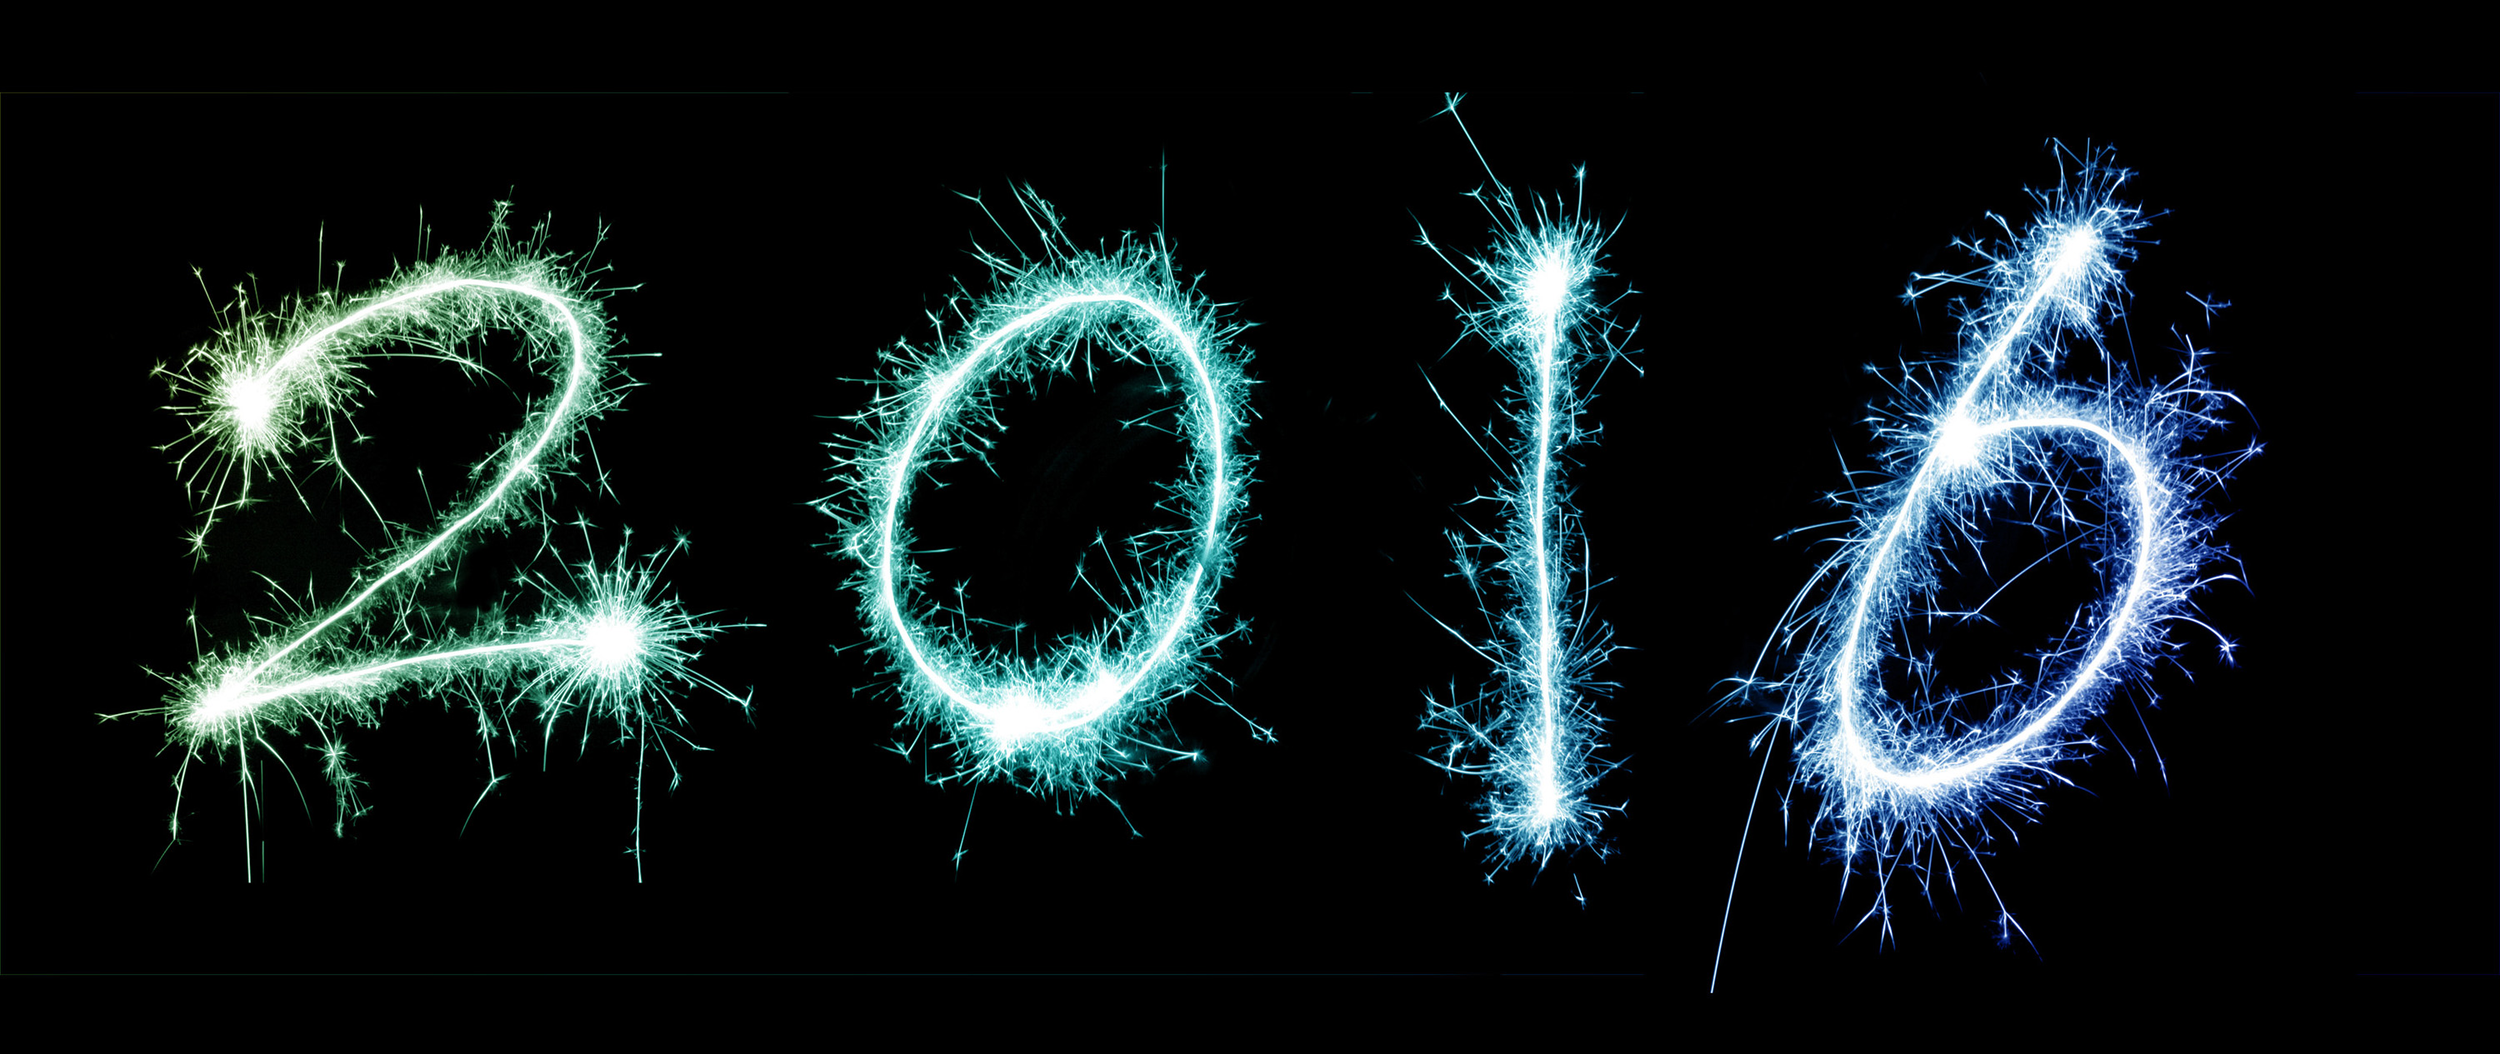 Here's to a great 2016!